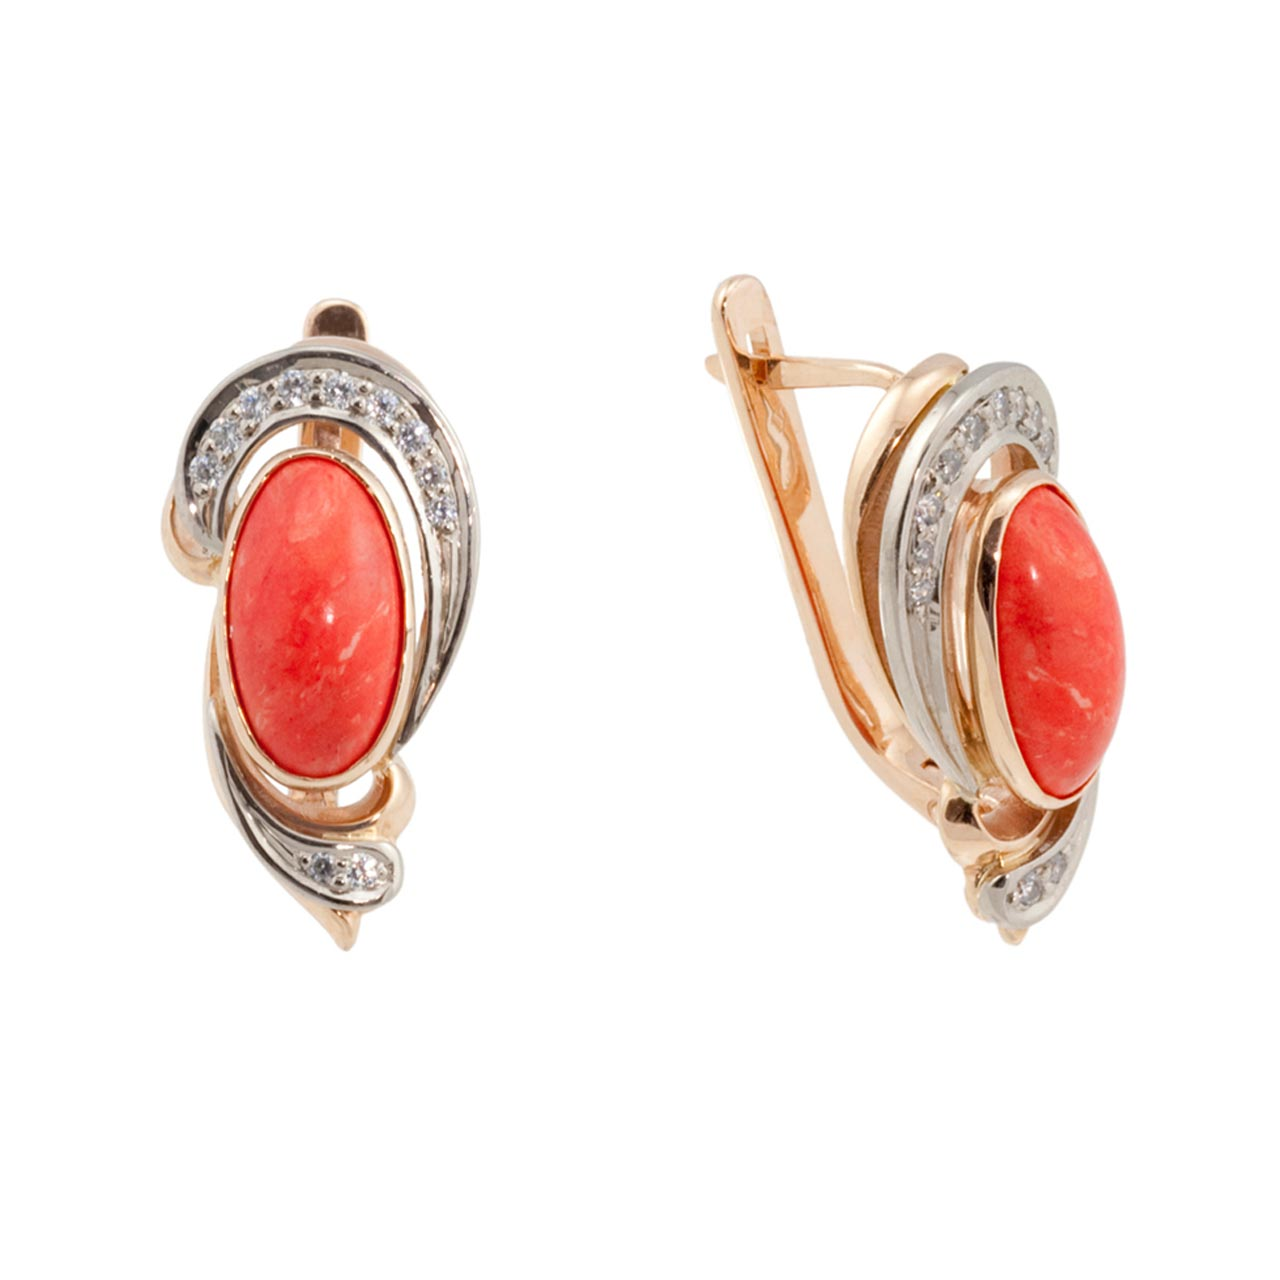 Coral Russian gold party earrings 1